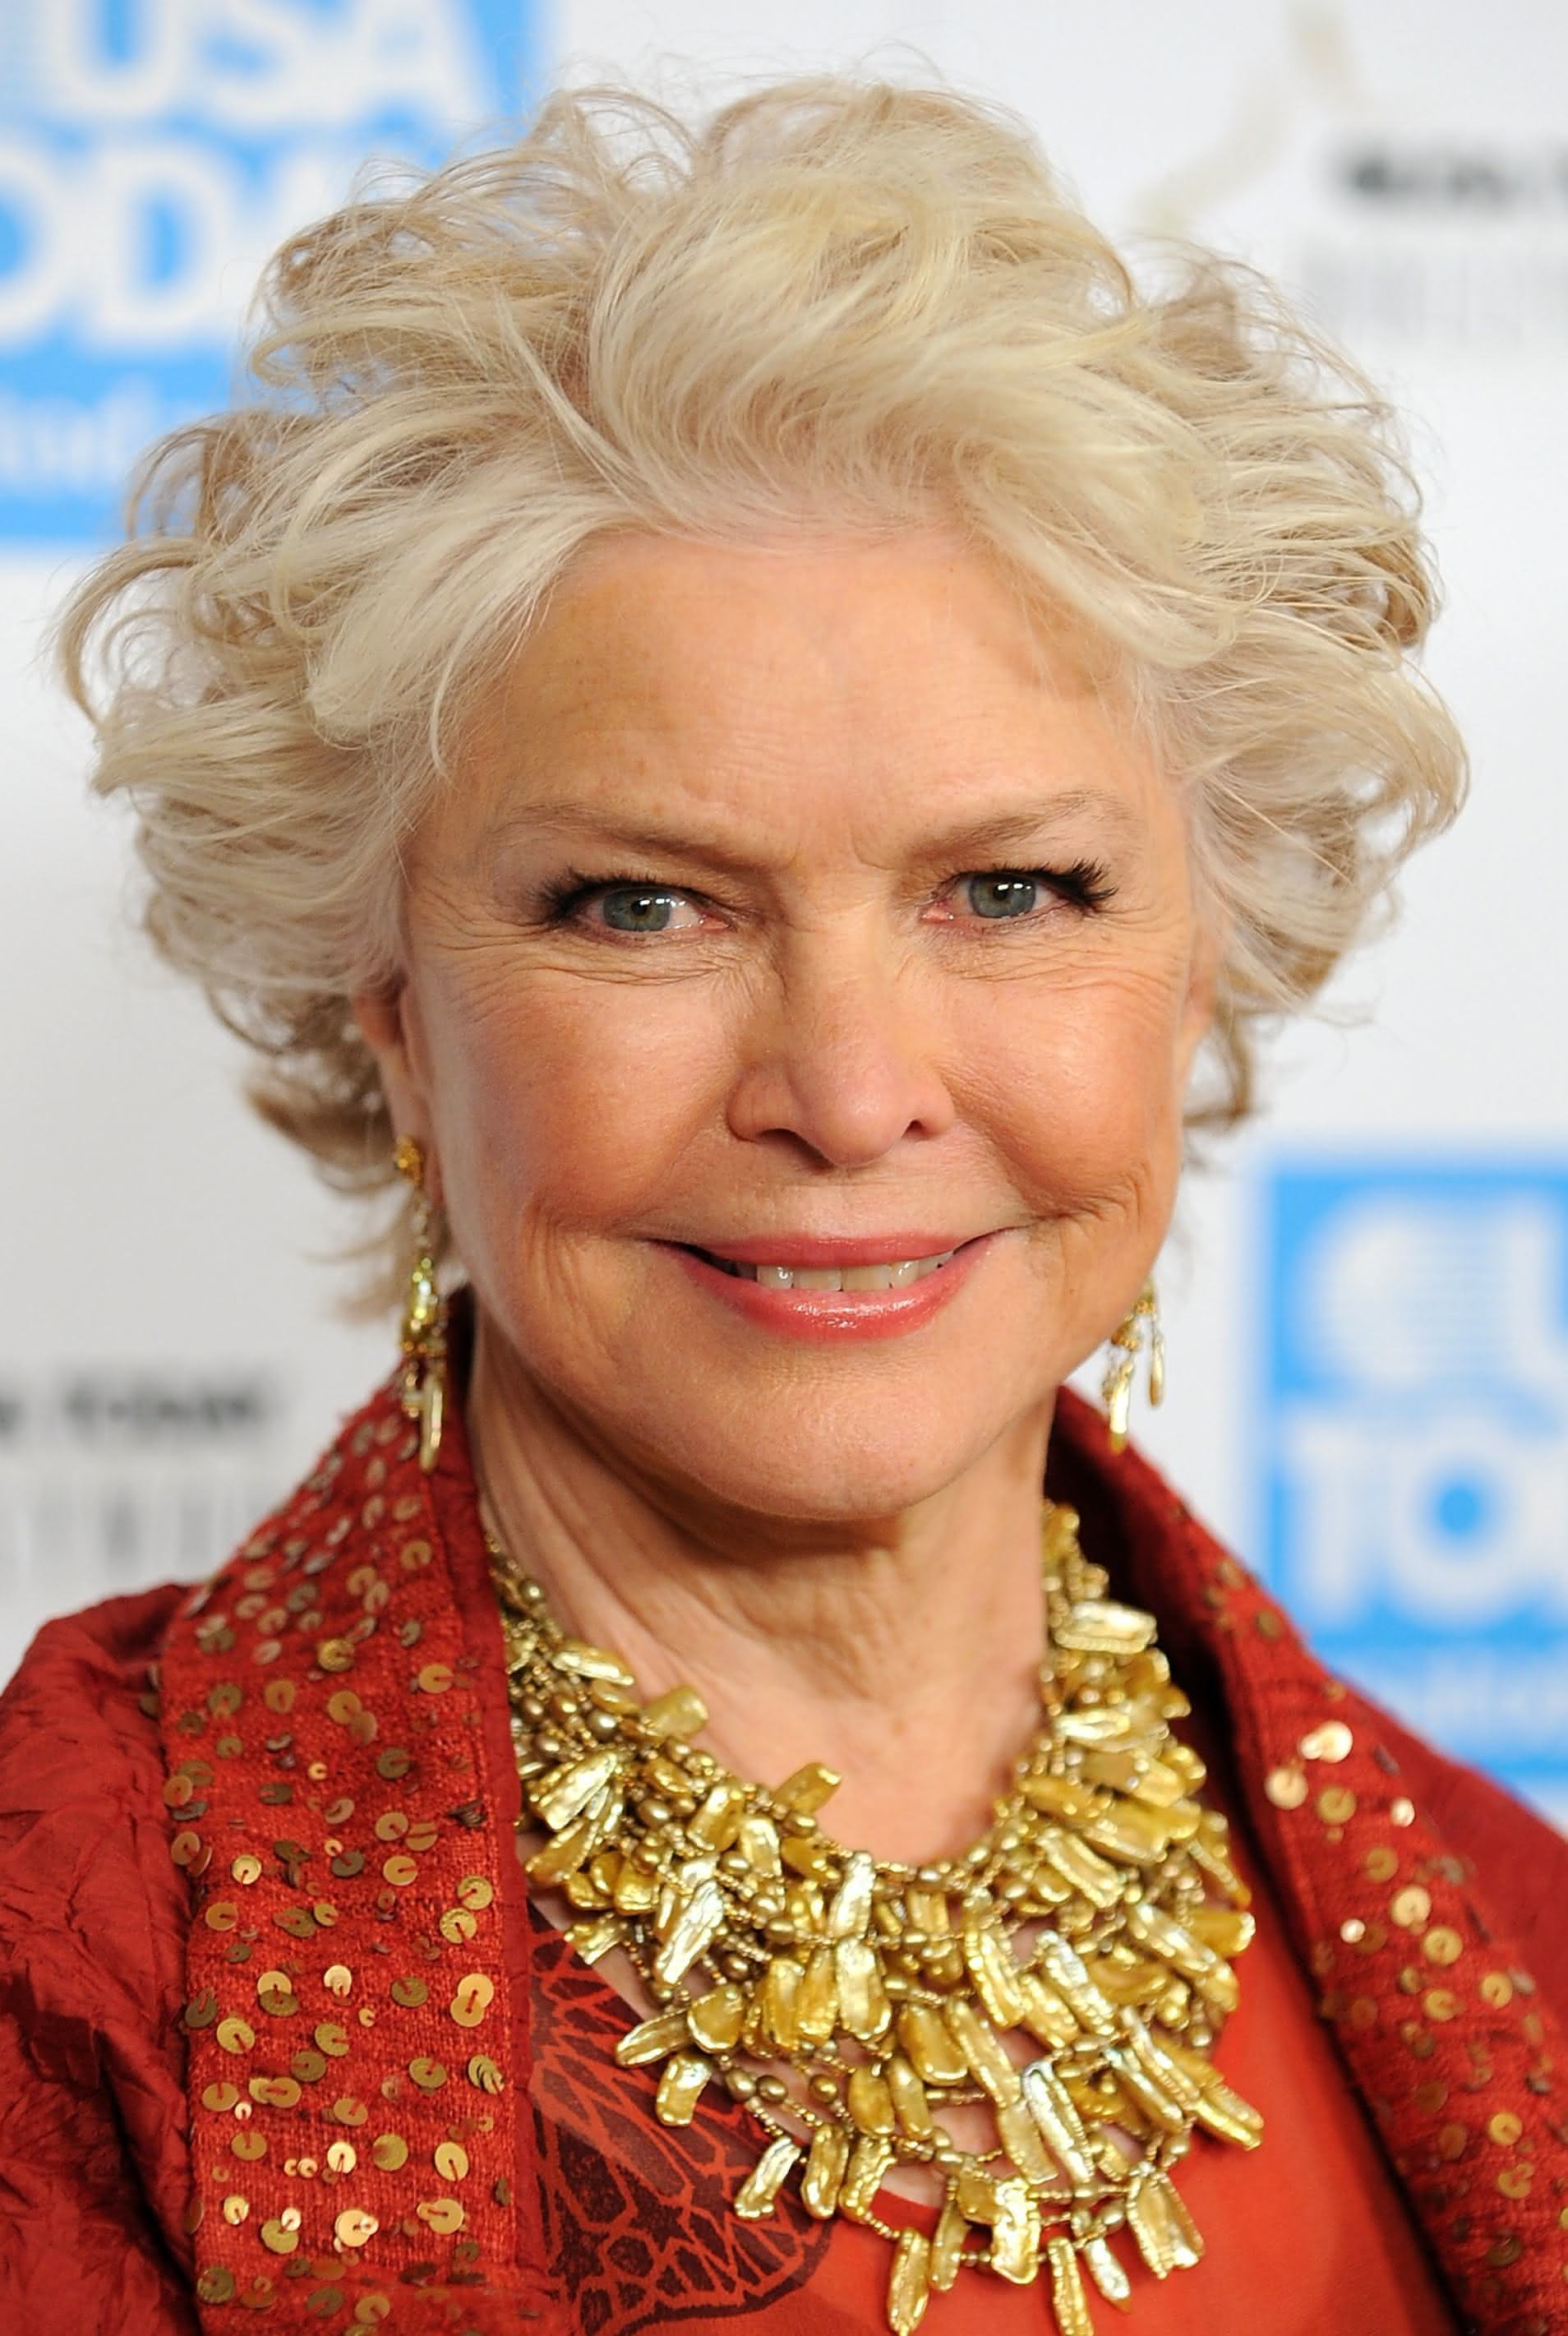 BEVERLY HILLS, CA - NOVEMBER 10: Actress Ellen Burstyn arrives at the USA Today's 4th Annual Hollywood Hero Award Gala honoring Ashley Judd on November 10, 2009 in Beverly Hills, California. (Photo by Alberto E. Rodriguez/Getty Images)